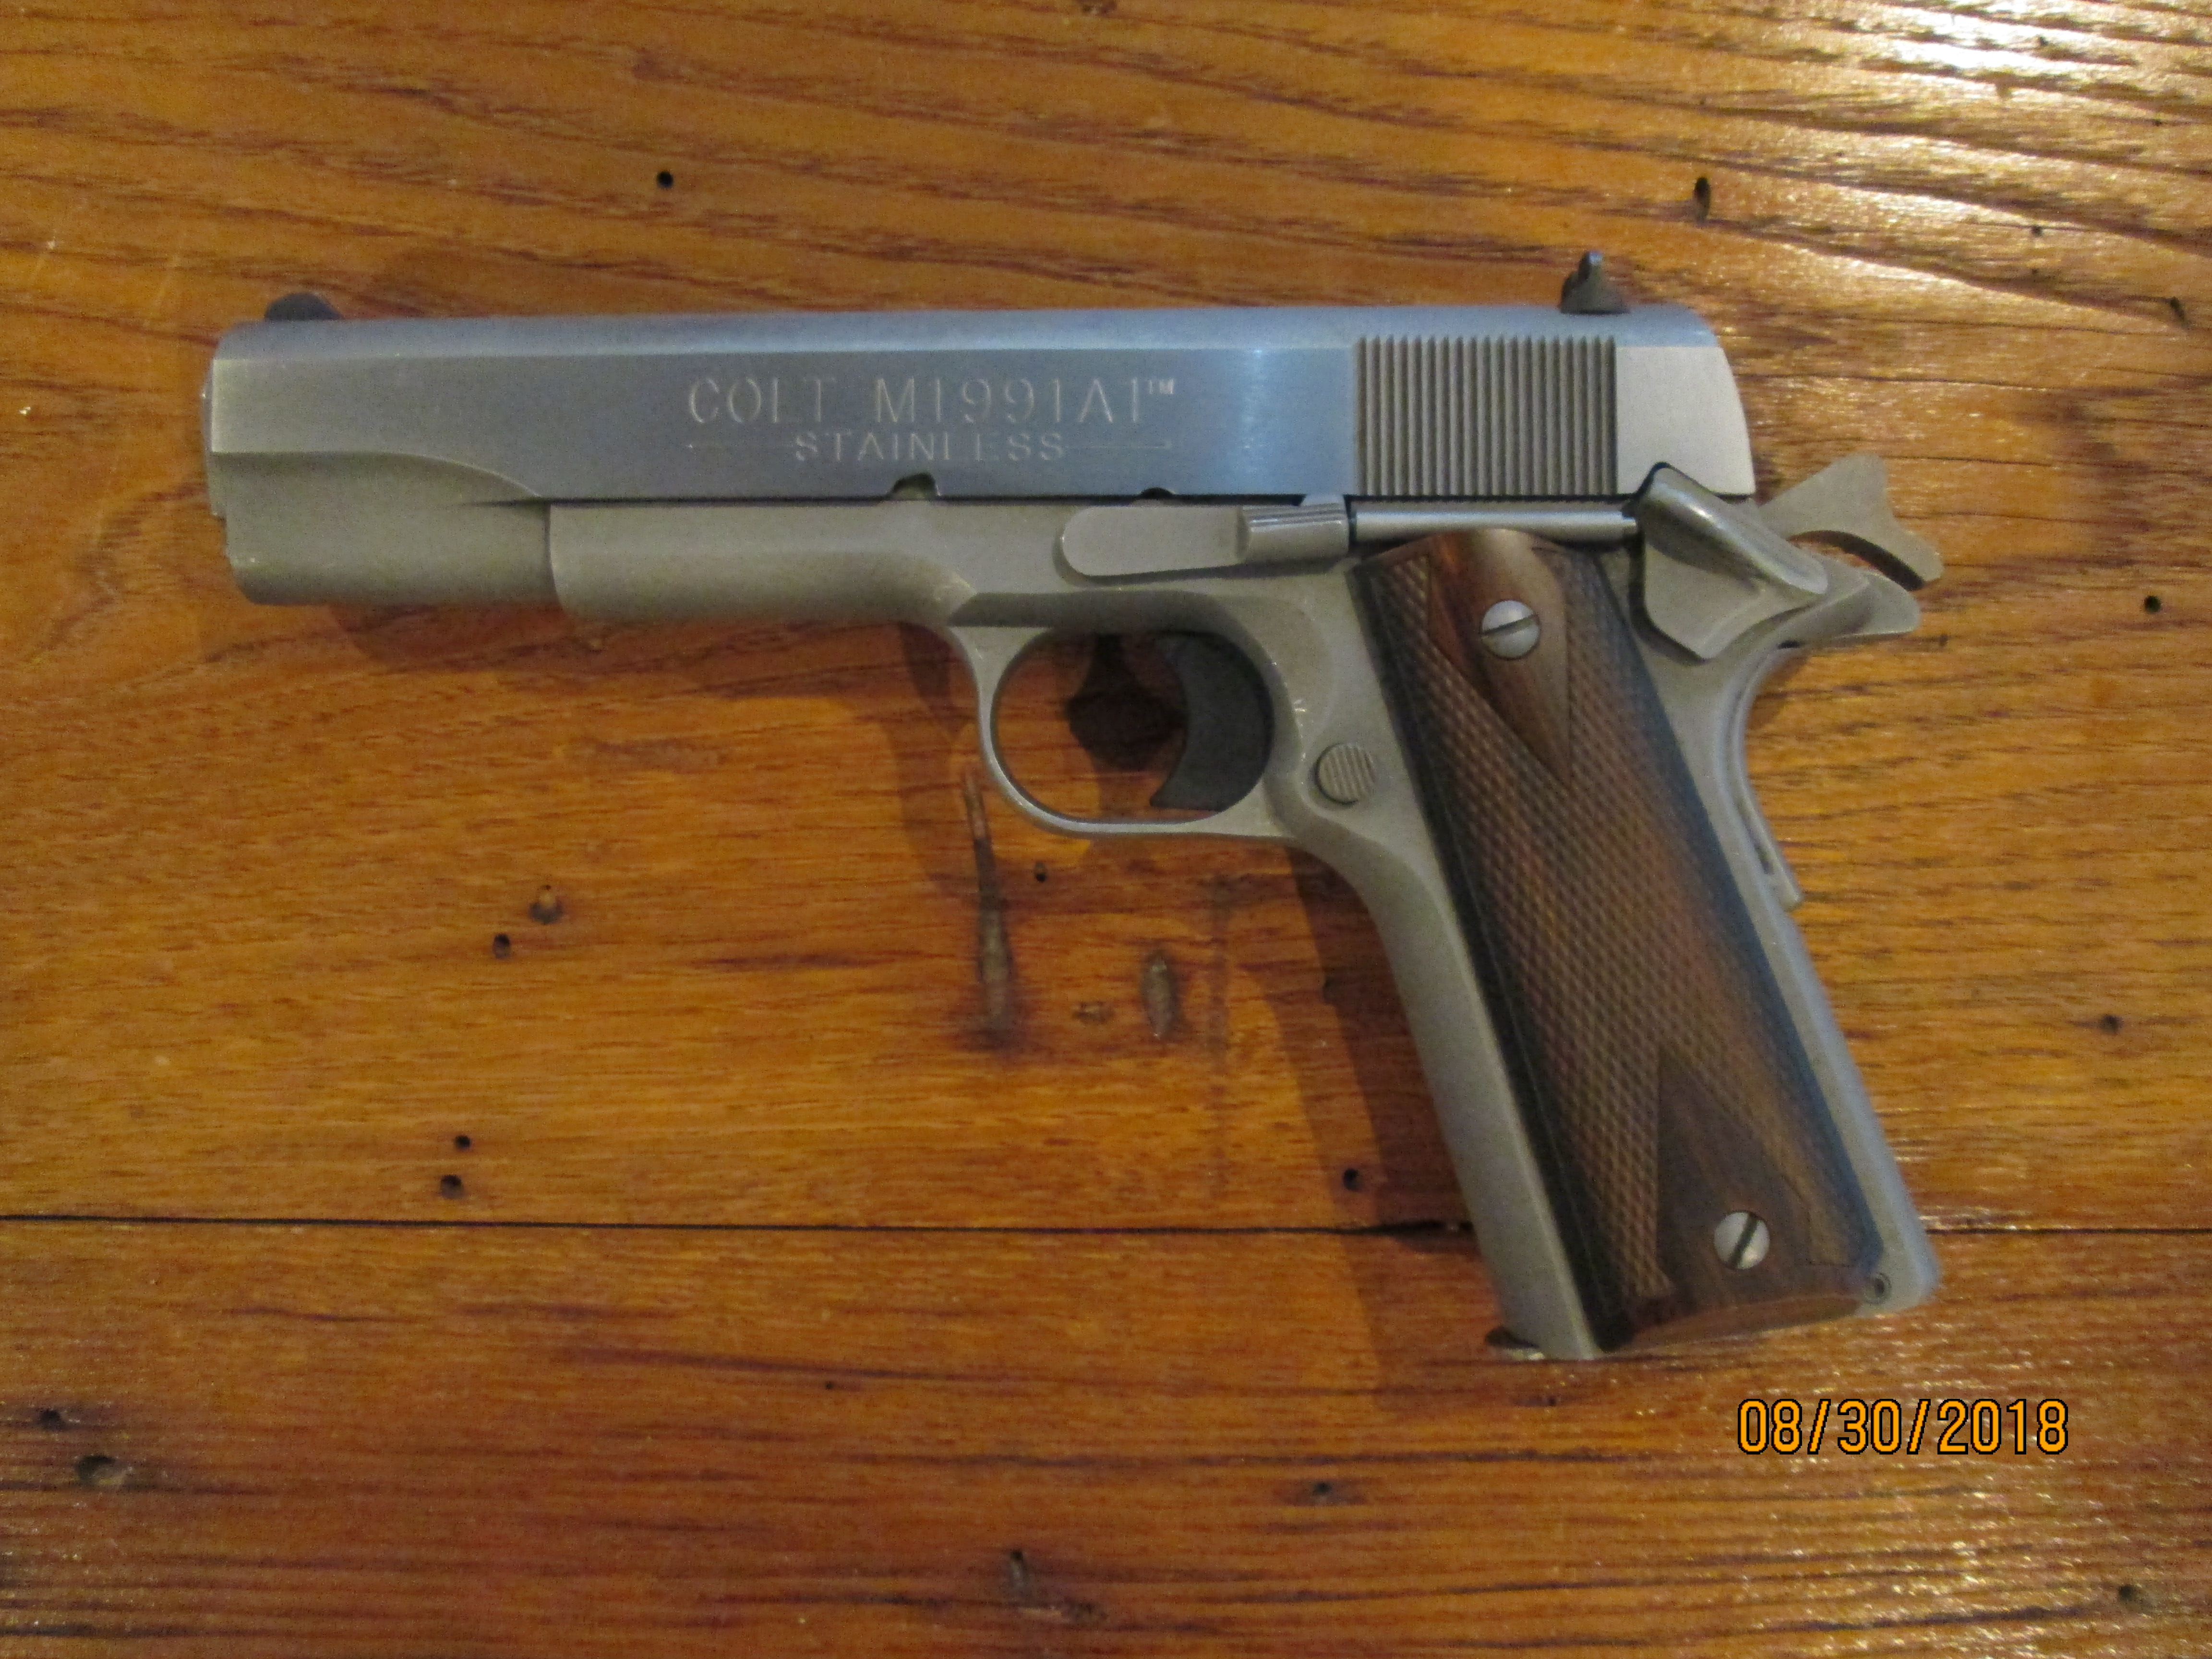 Share some Colt love - a picture thread-1991a-1.jpg